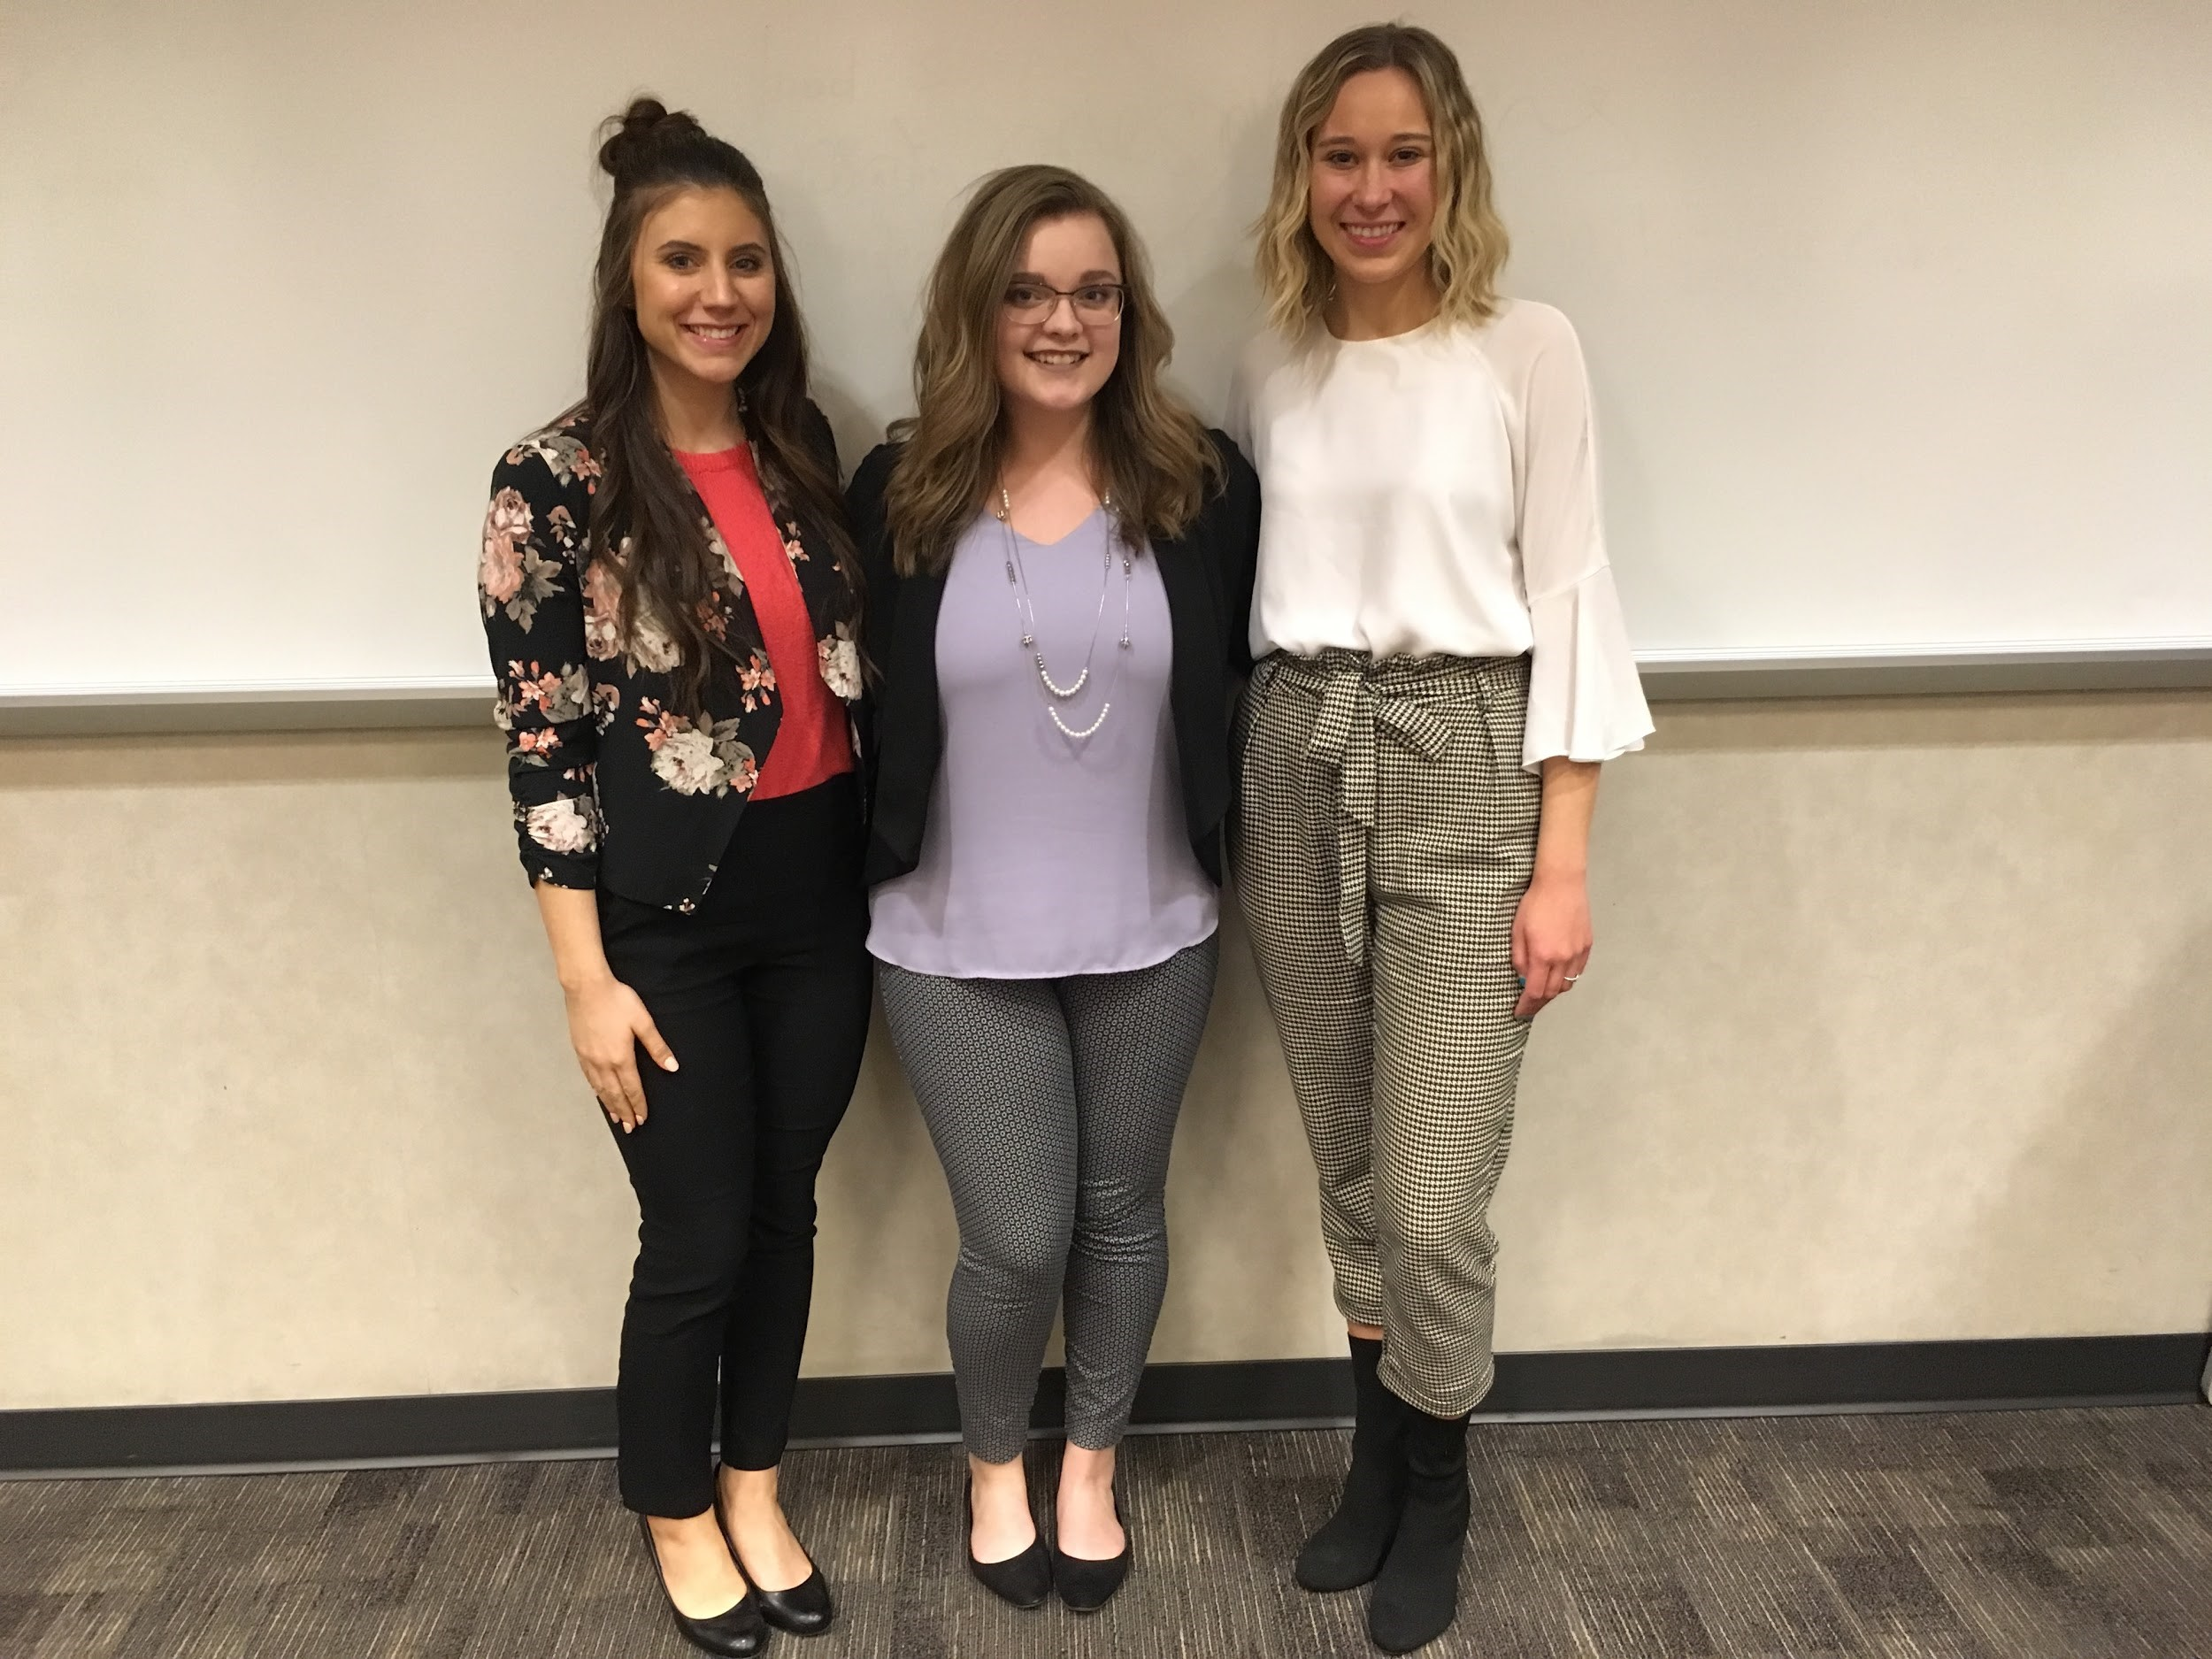 Kelsey Pardue, Adrienne Cooley, and Bri Olson of GrandPR modeling their professional looks at a recent meeting.